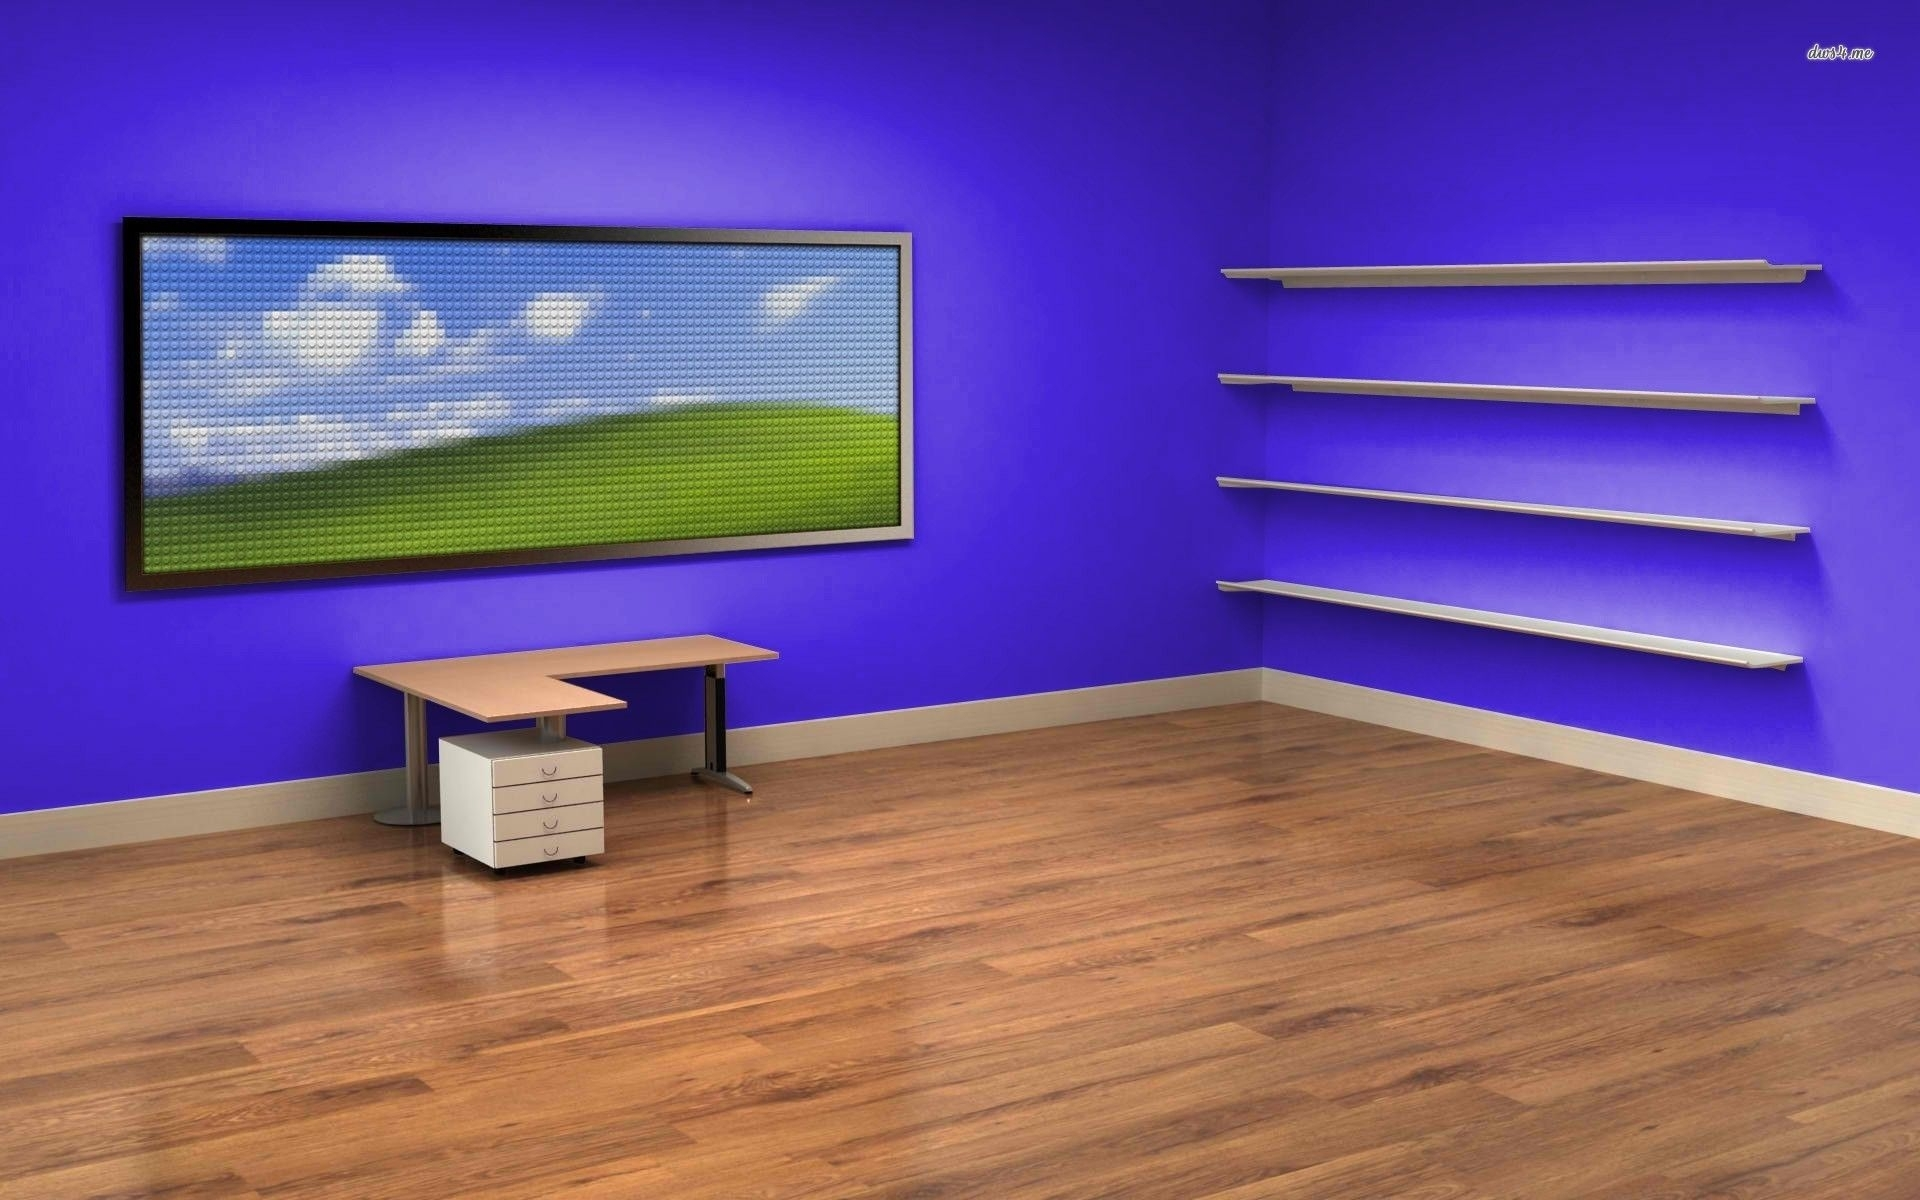 Title Desk And Shelves Desktop Wallpaper Wallpapersafari Epic Car Dimension 1920 X 1200 File Type Jpg Jpeg